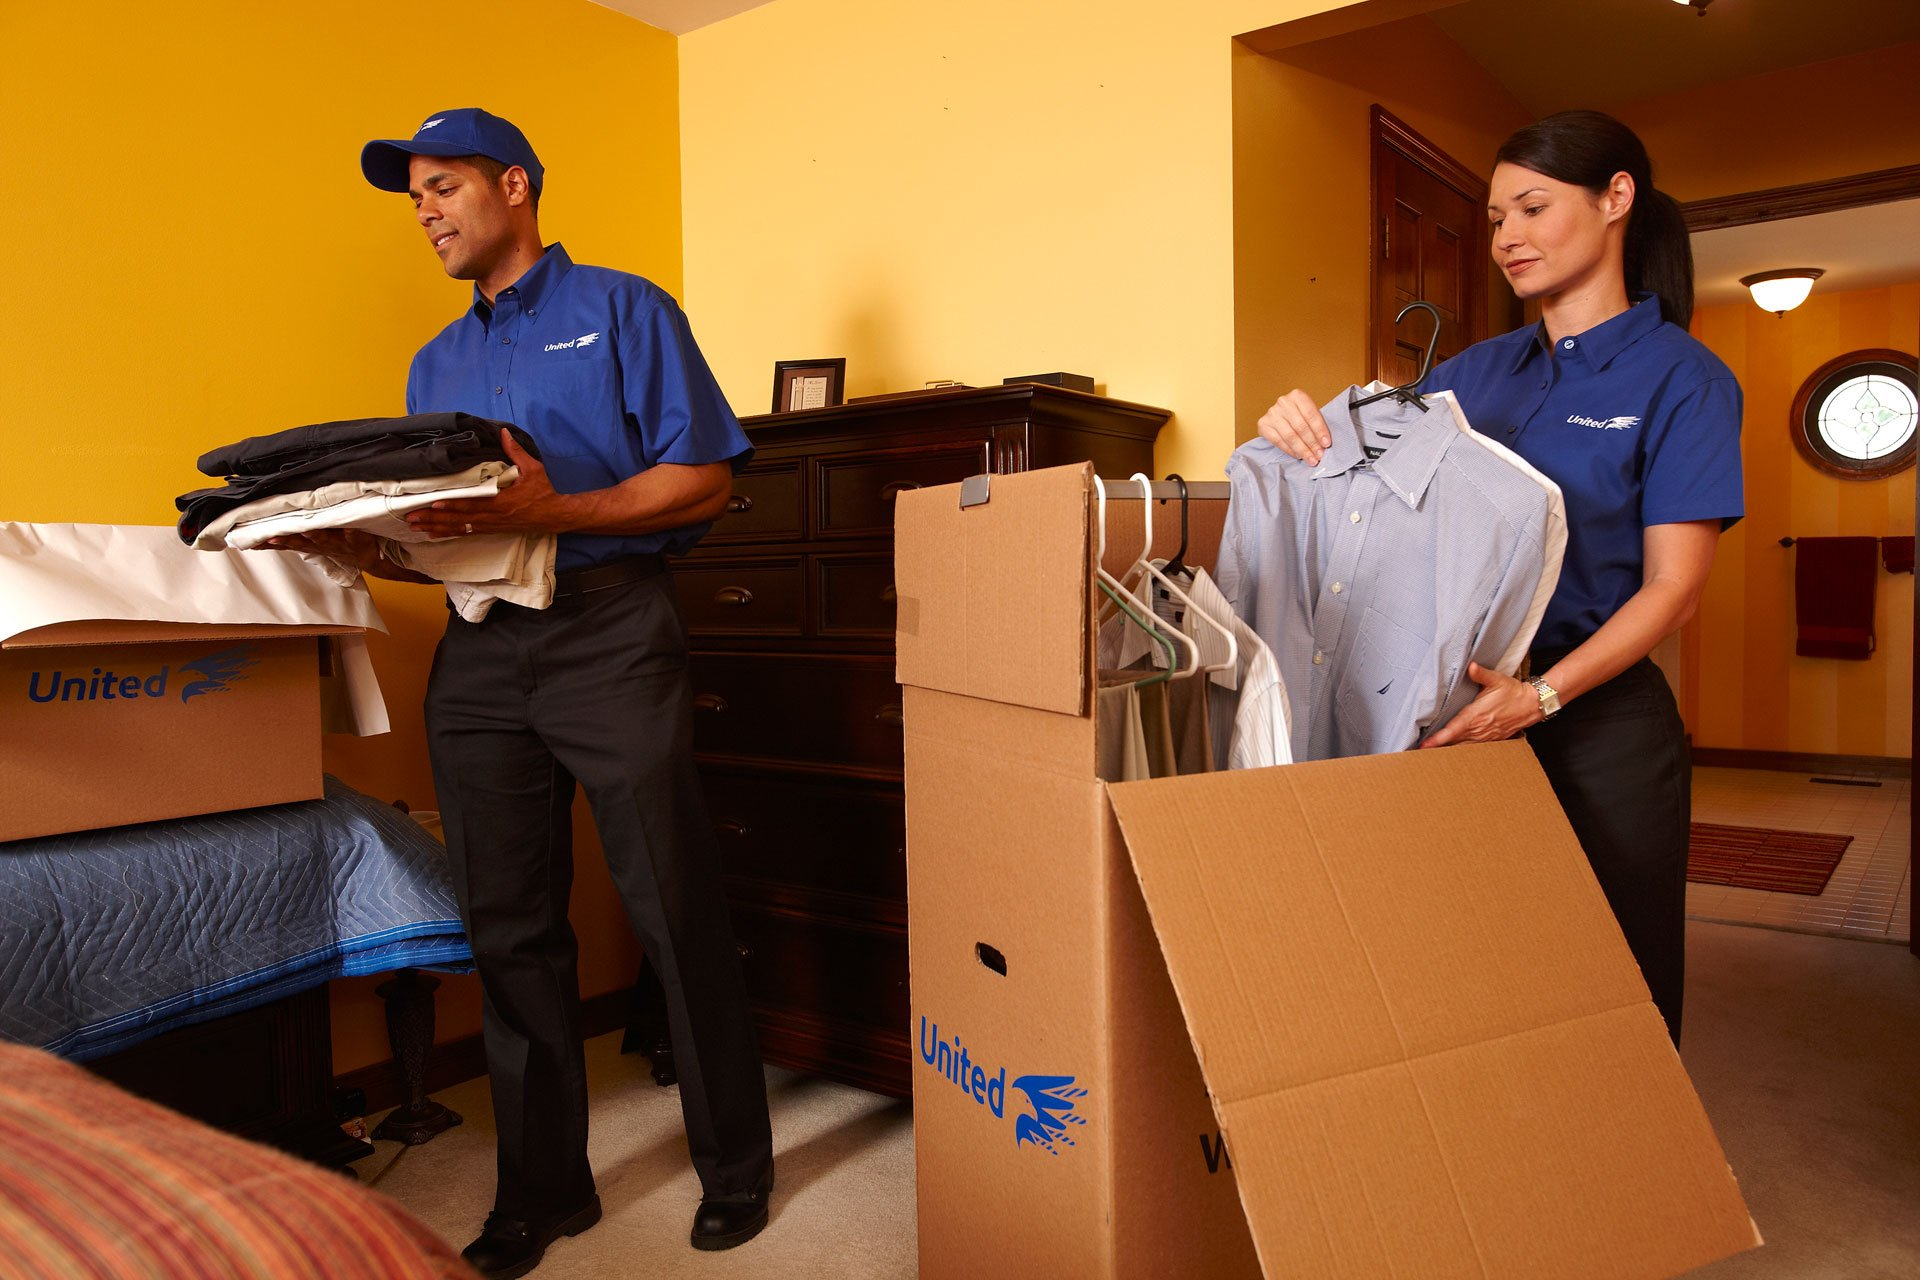 Packers and movers Dallas